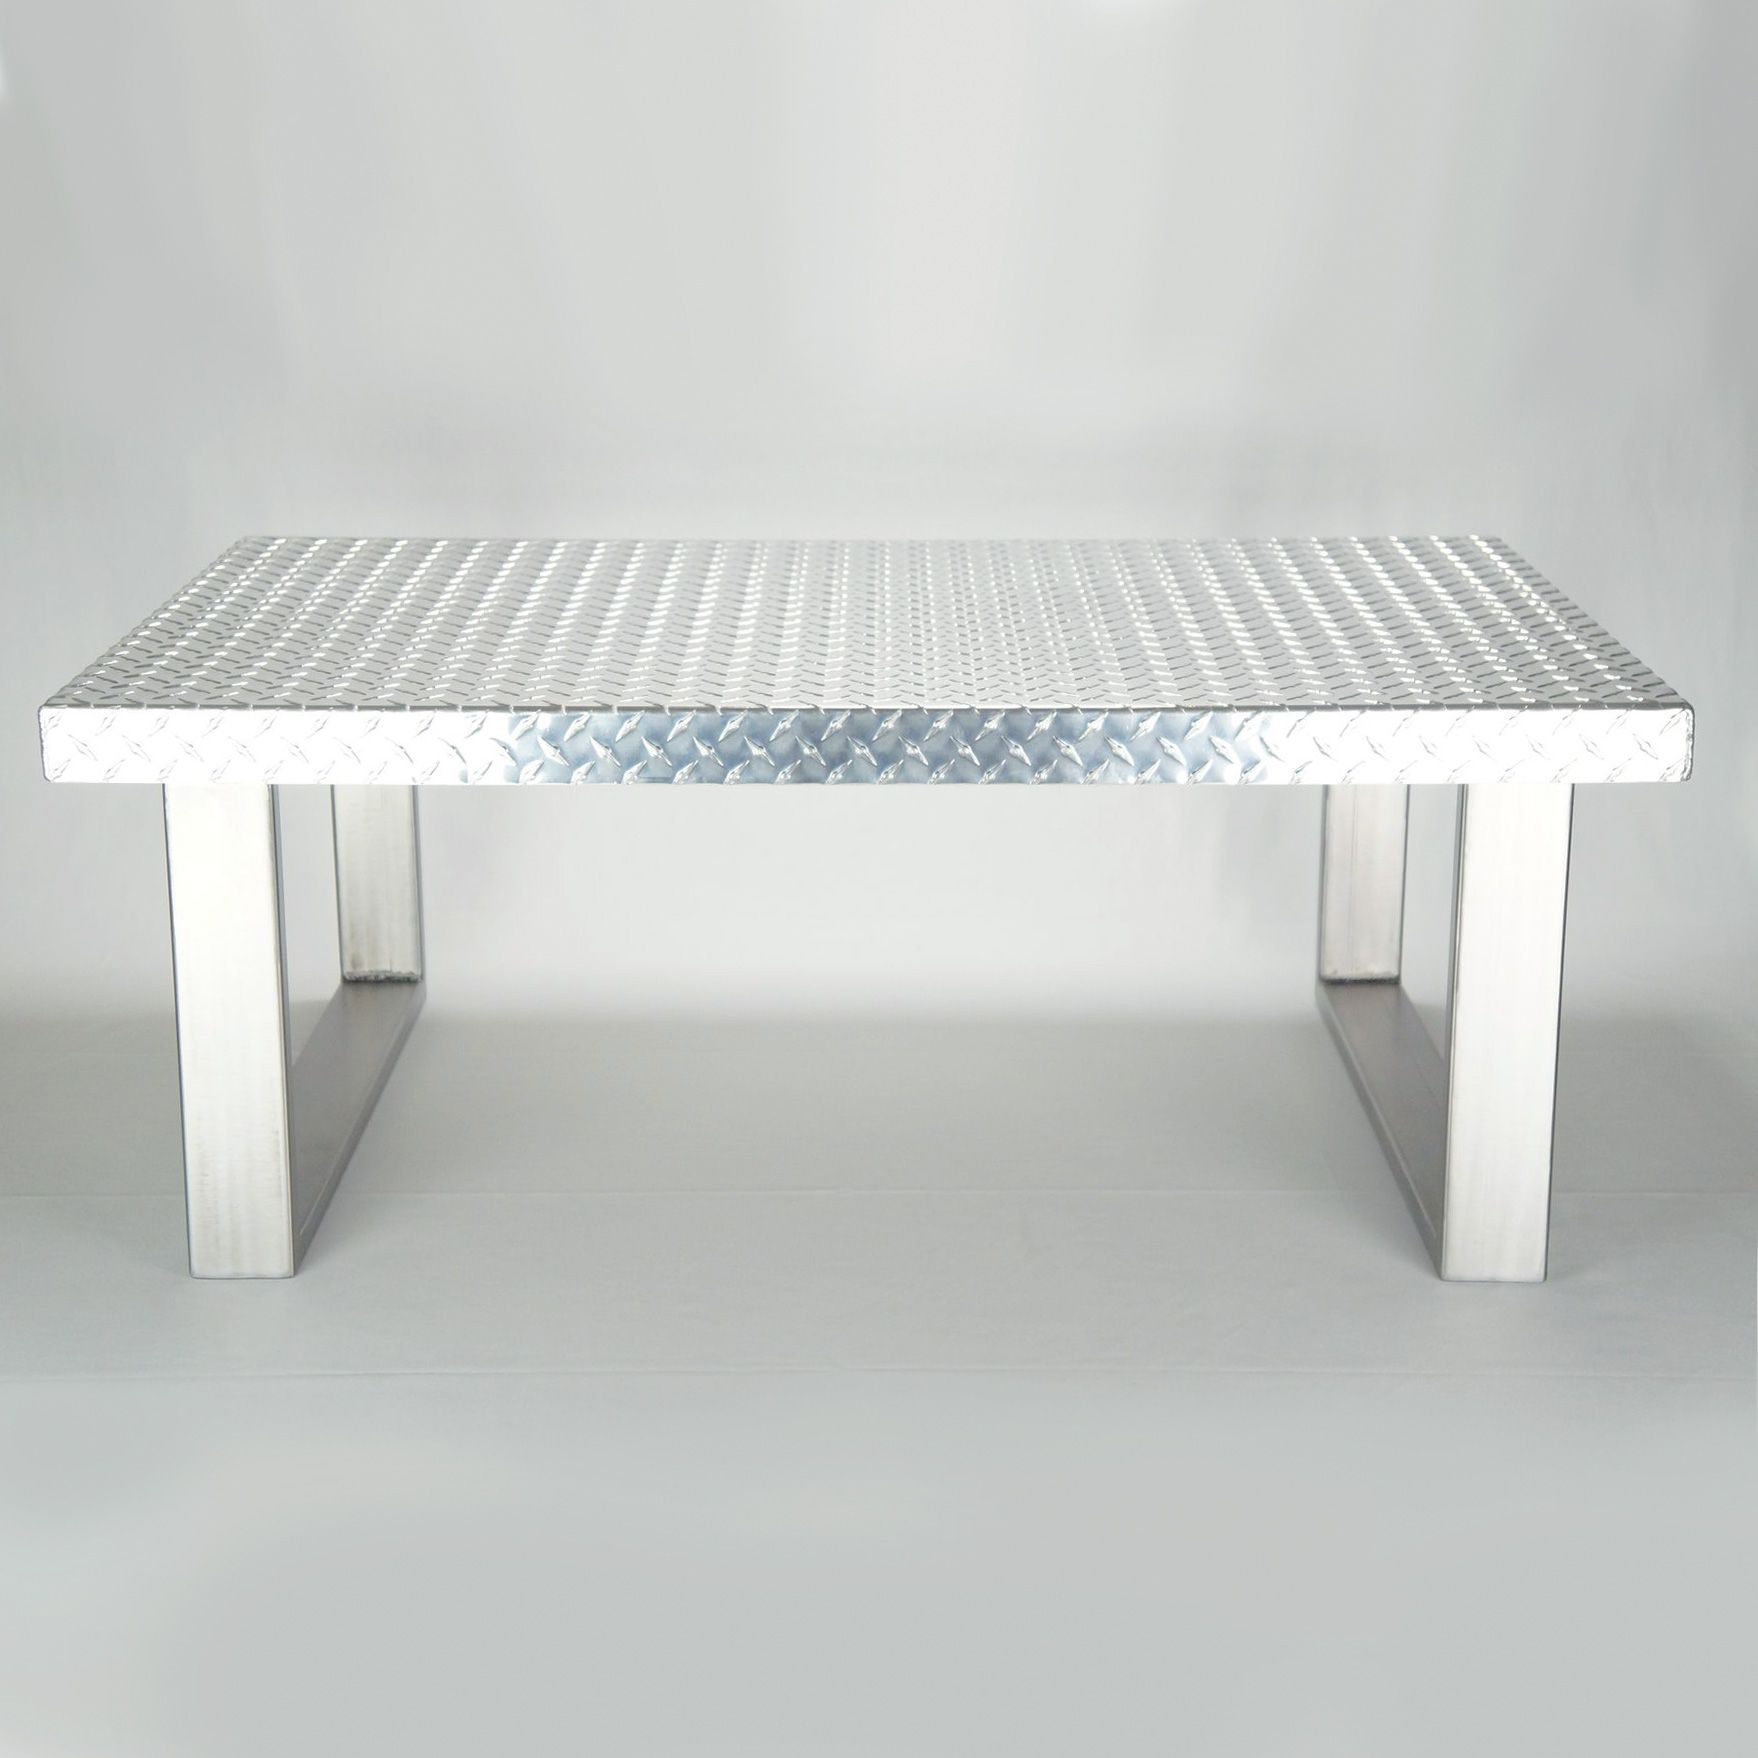 Custom Made Diamond Plate Metal Coffee Table